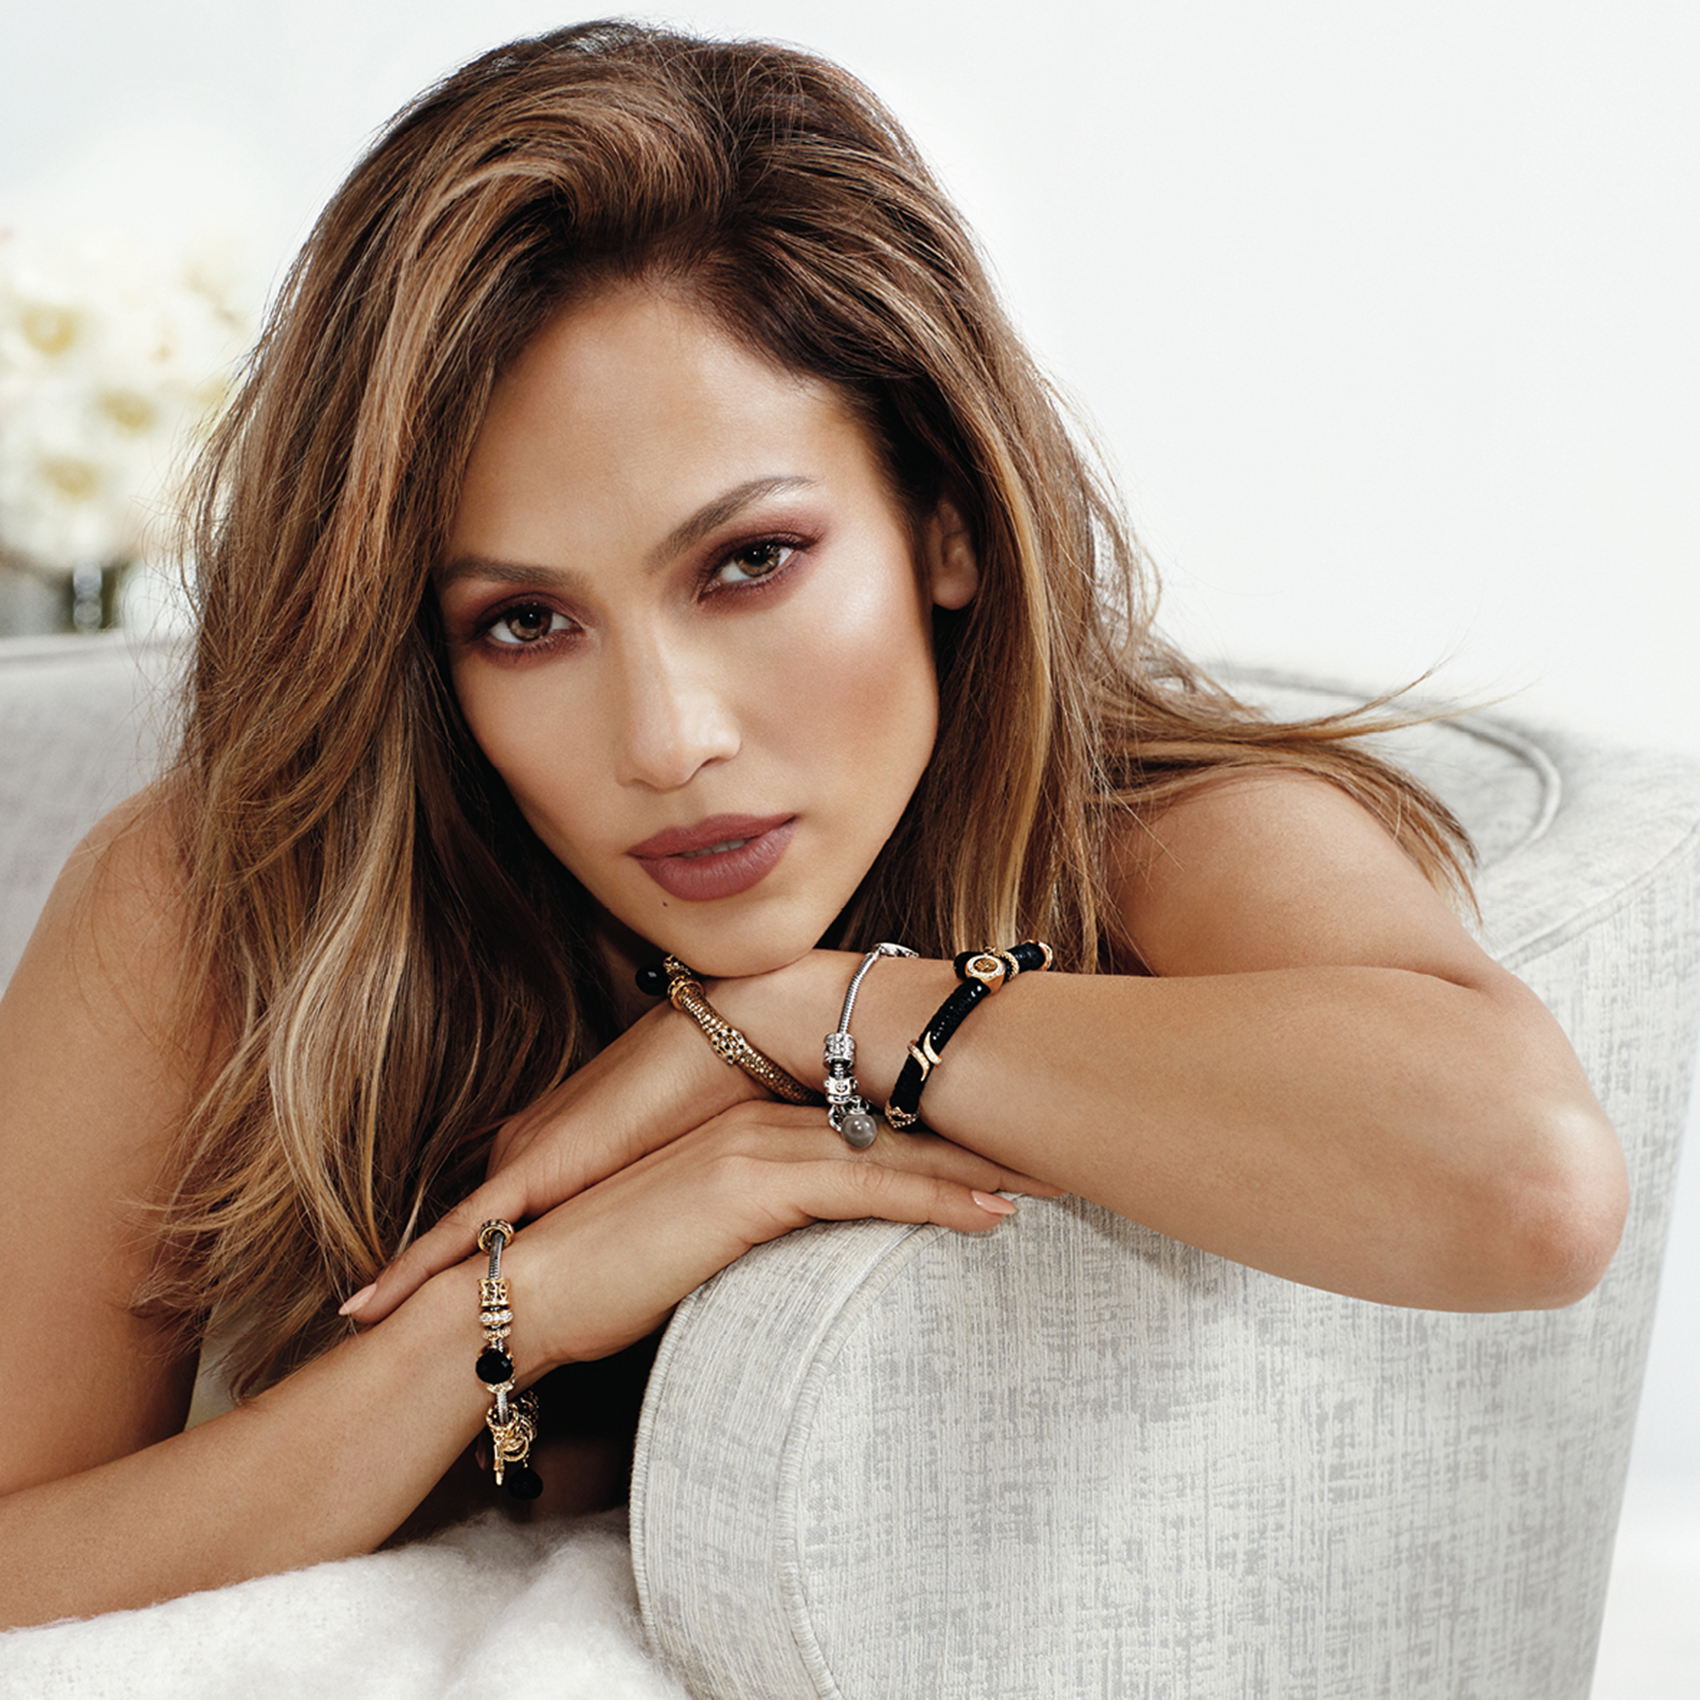 Jennifer Lopez Presents Her New Jewels Collection